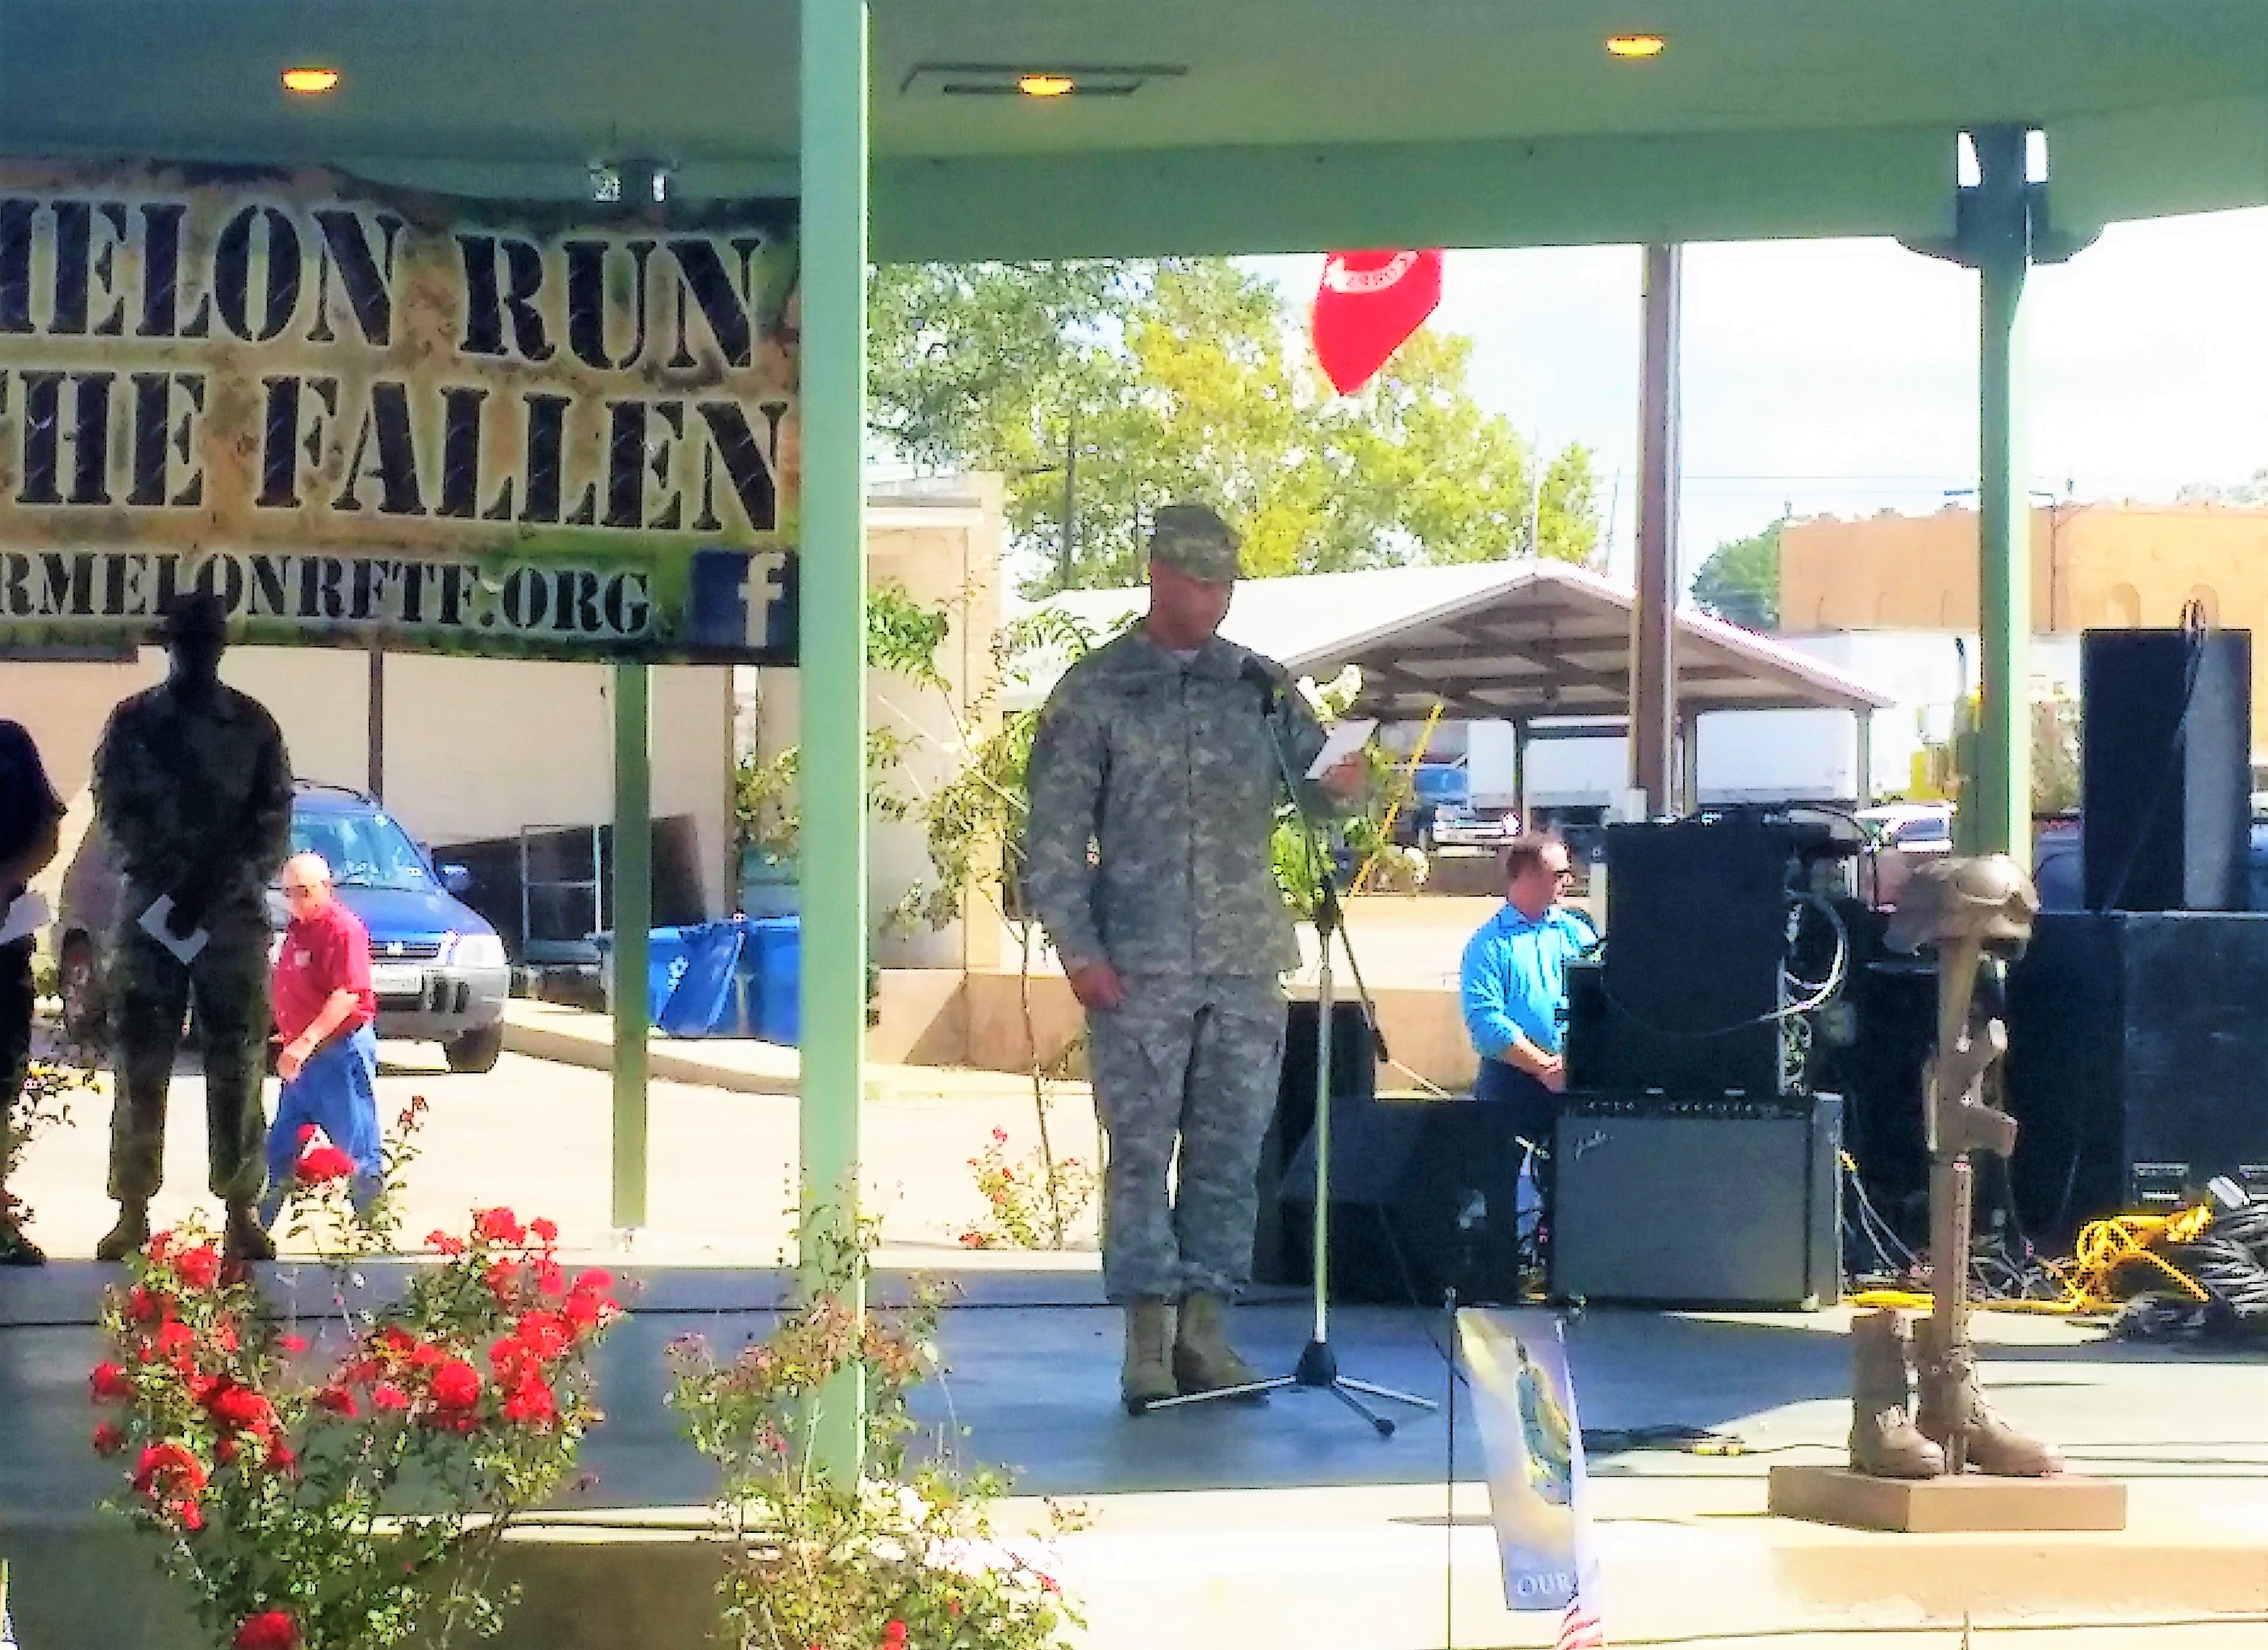 Sgt. Eseil Hernandez, 8th Regiment, Texas State Guard, reads names of fallen Texas service members during the annual Watermelon Run for the Fallen remembrance ceremony held at the Staff Sgt. Jeffery Lee Hartley Memorial Park, in Hempstead, Texas, August 19, 2017. This event honors Texas service members who have died in the service of Texas and the country since September 11, 2001. (Texas State Guard photo by Staff Sgt. Gregory Illich)